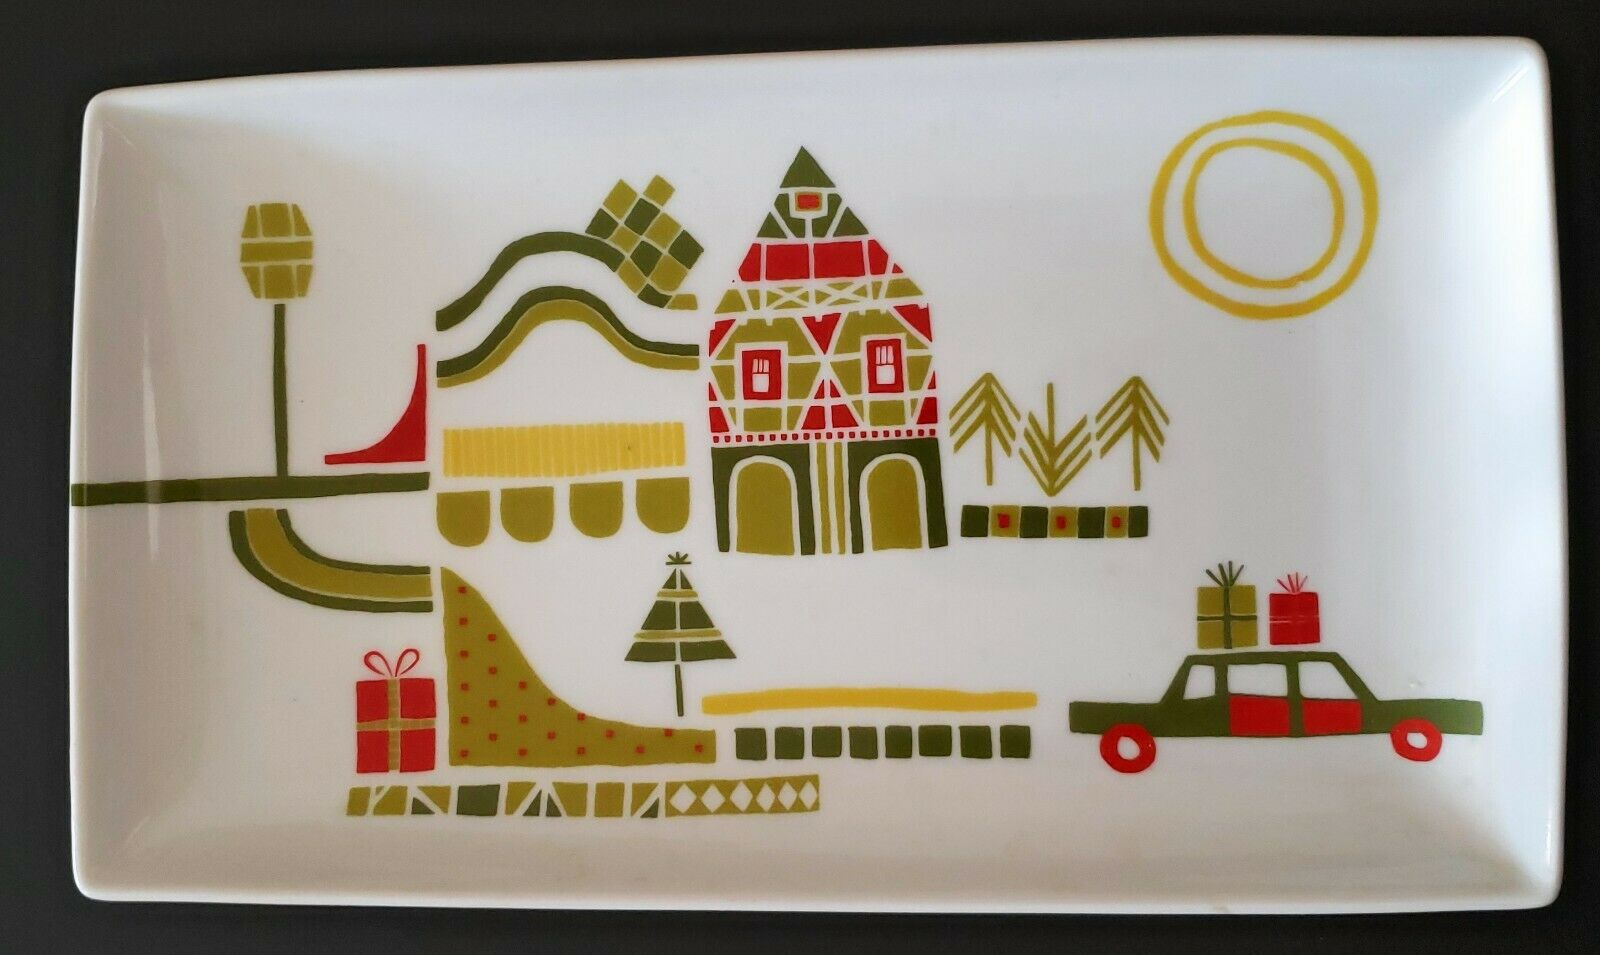 Crate Barrel Yule Town Christmas Tray Holiday Appetizer Platter Julia Rothman For Sale Online Ebay